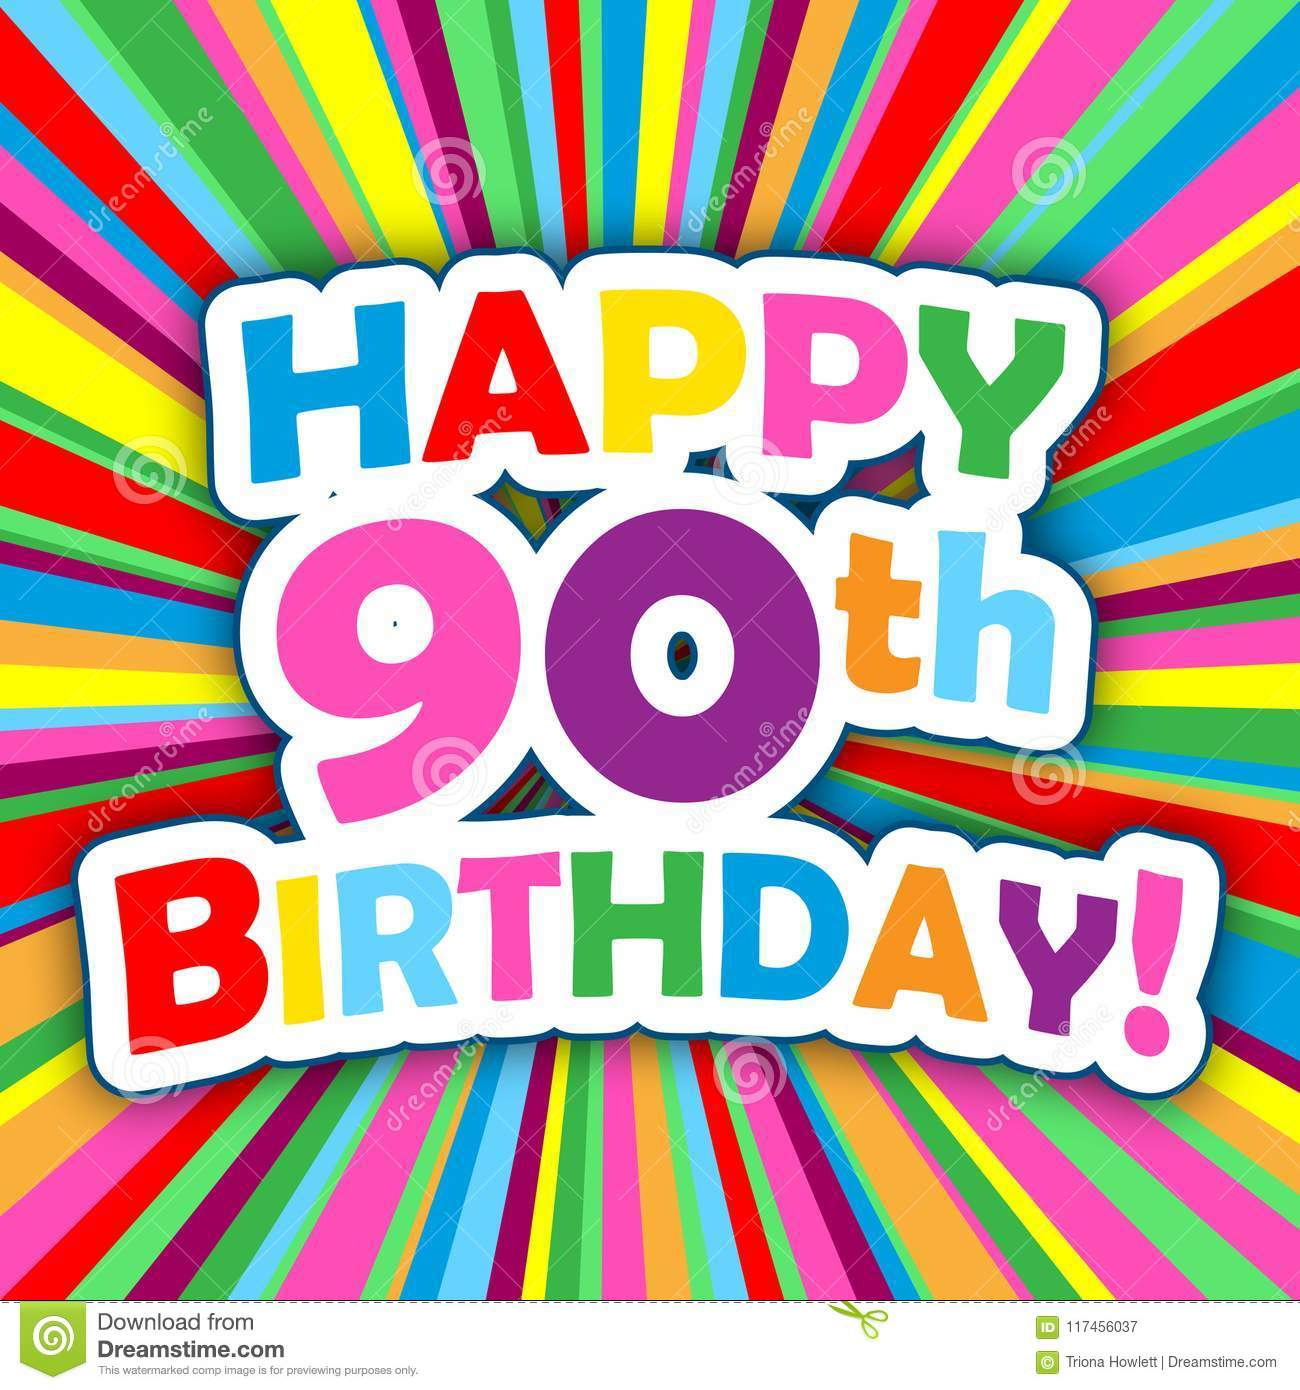 HAPPY 90th BIRTHDAY! Vector Card On Bright And Colorful Background.